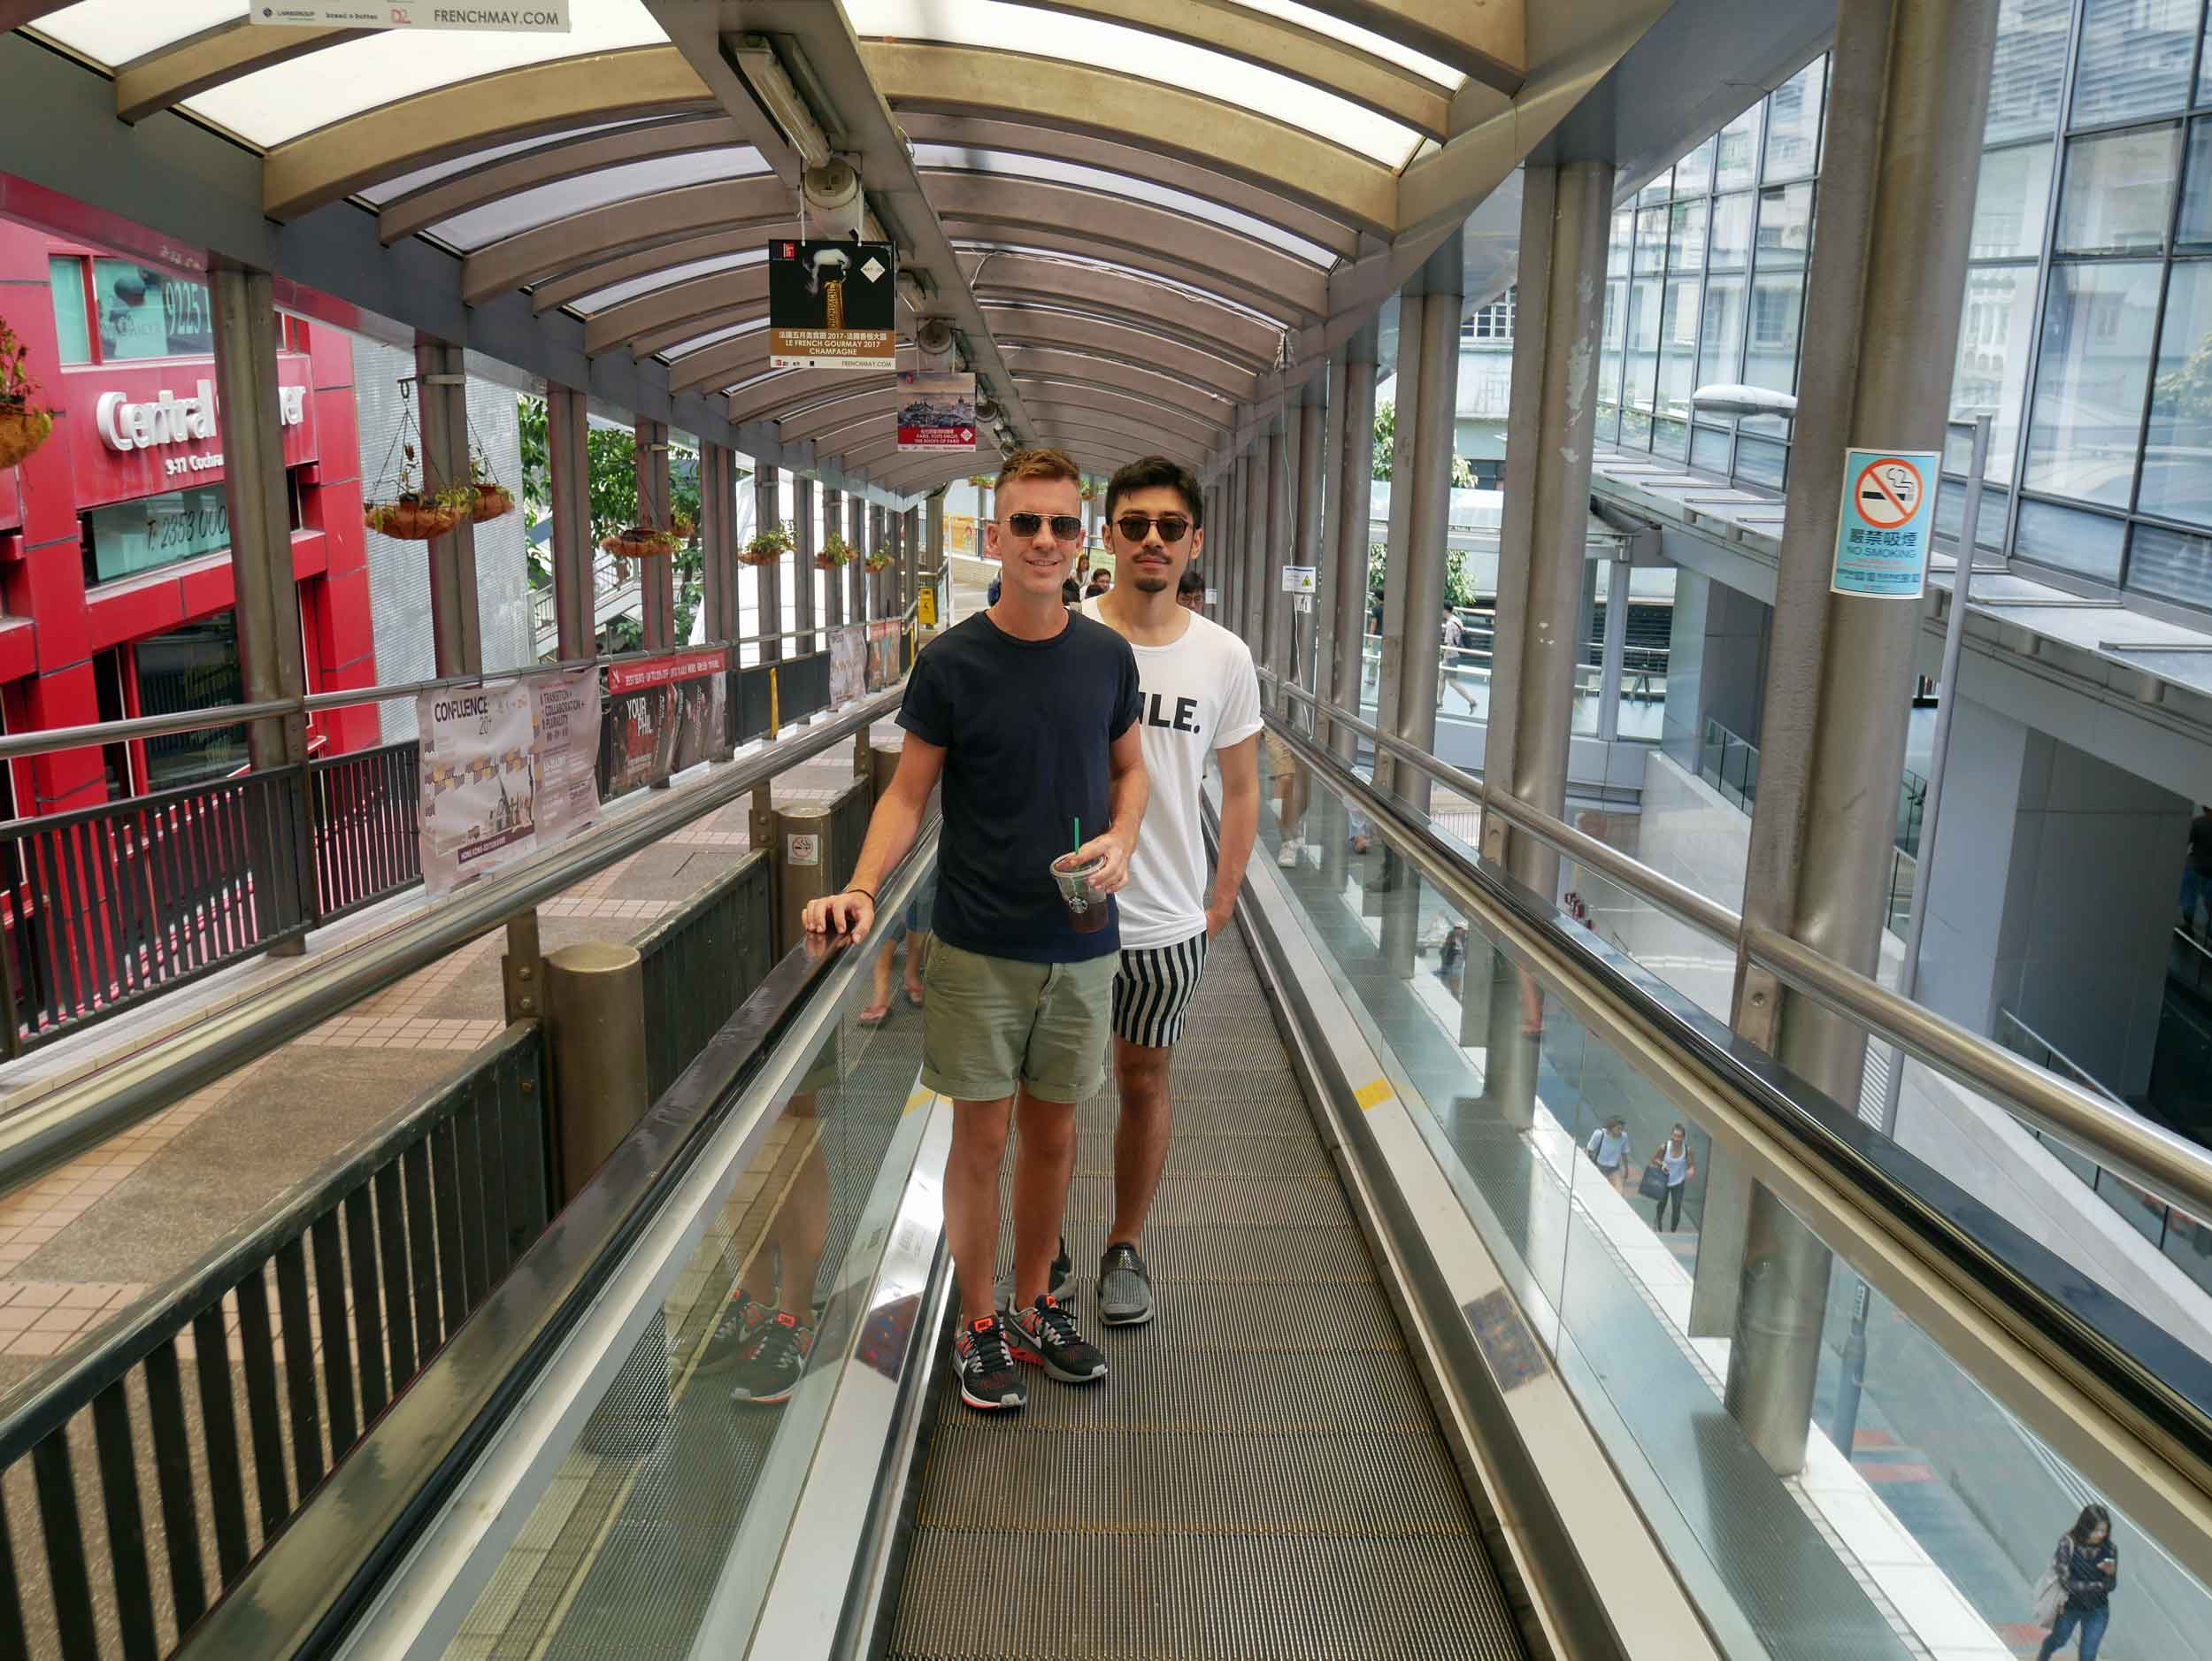 Trey and Nik ride the Central - Mid-Levels outdoor escalator, the longest moving sidewalk system in the world.